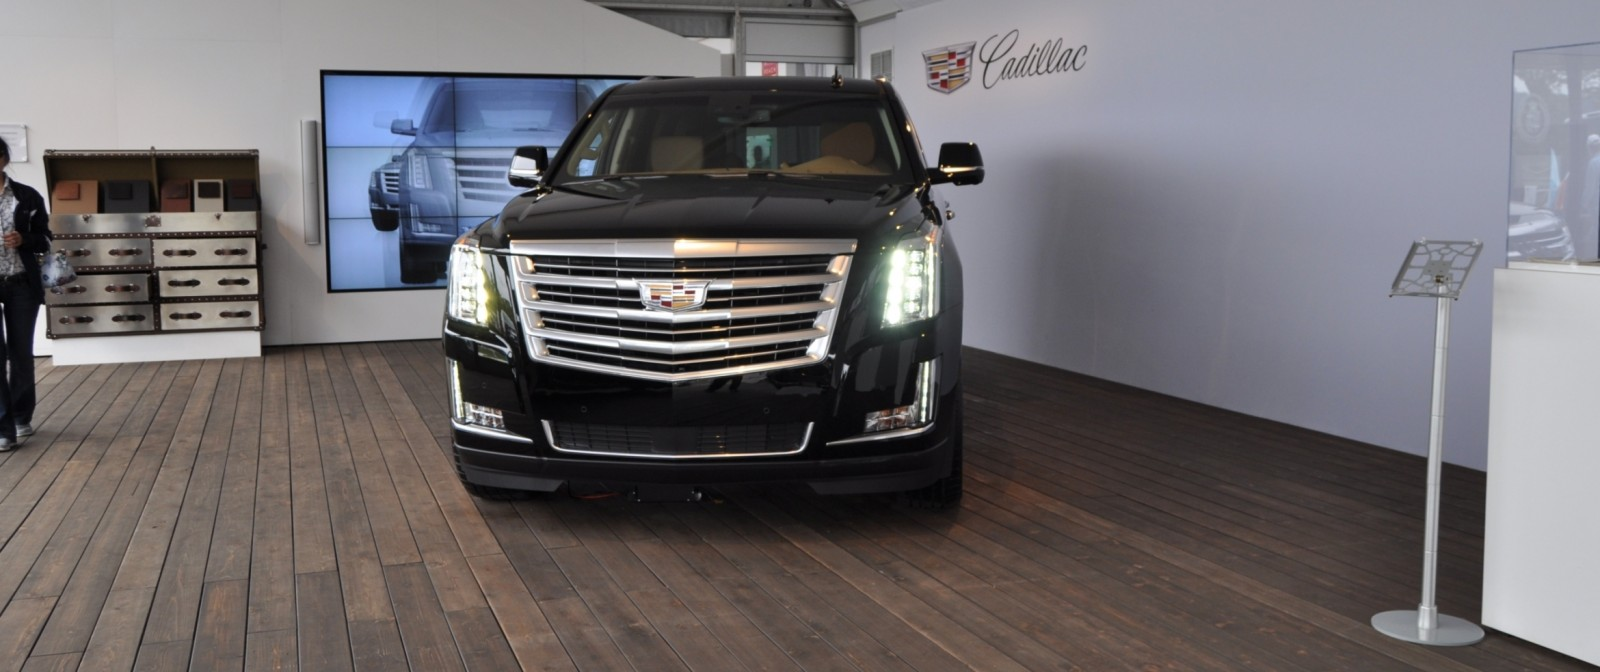 2015 Cadillac Escalade Platinum and Standard Model Unveiled for Pebble Beach 7